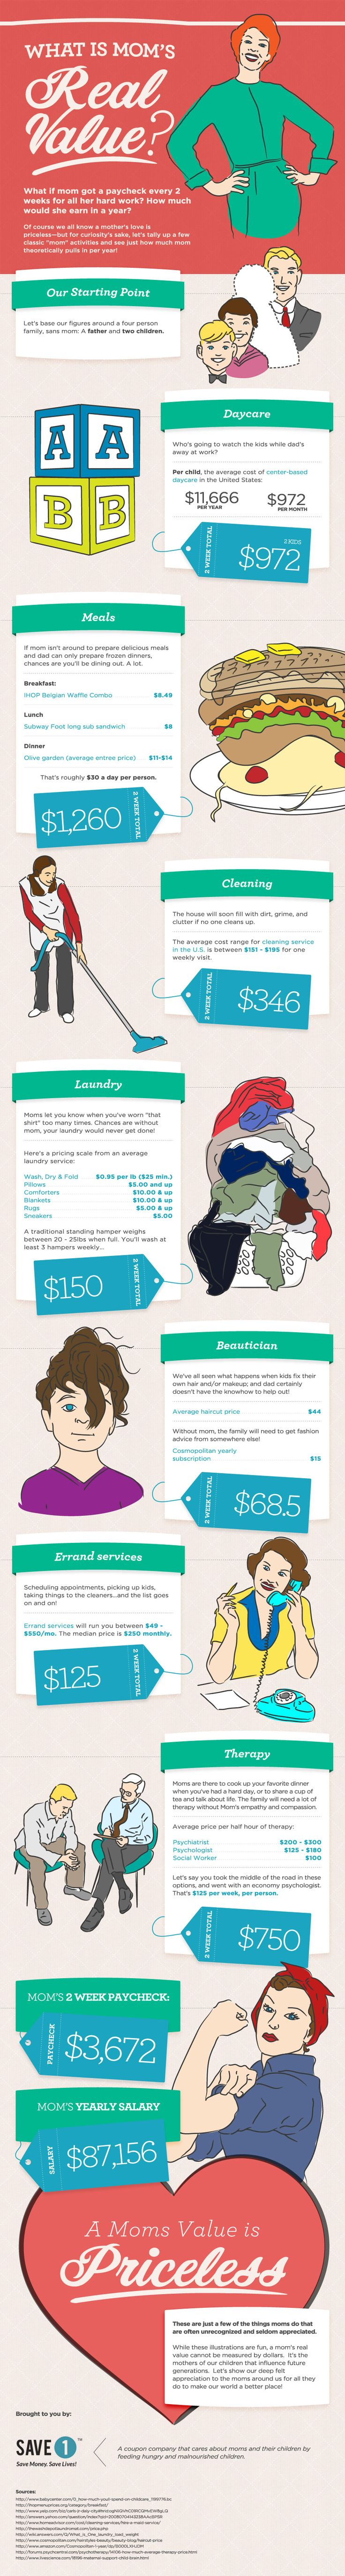 Moms Real Value #infographic #mothersday #motherhood